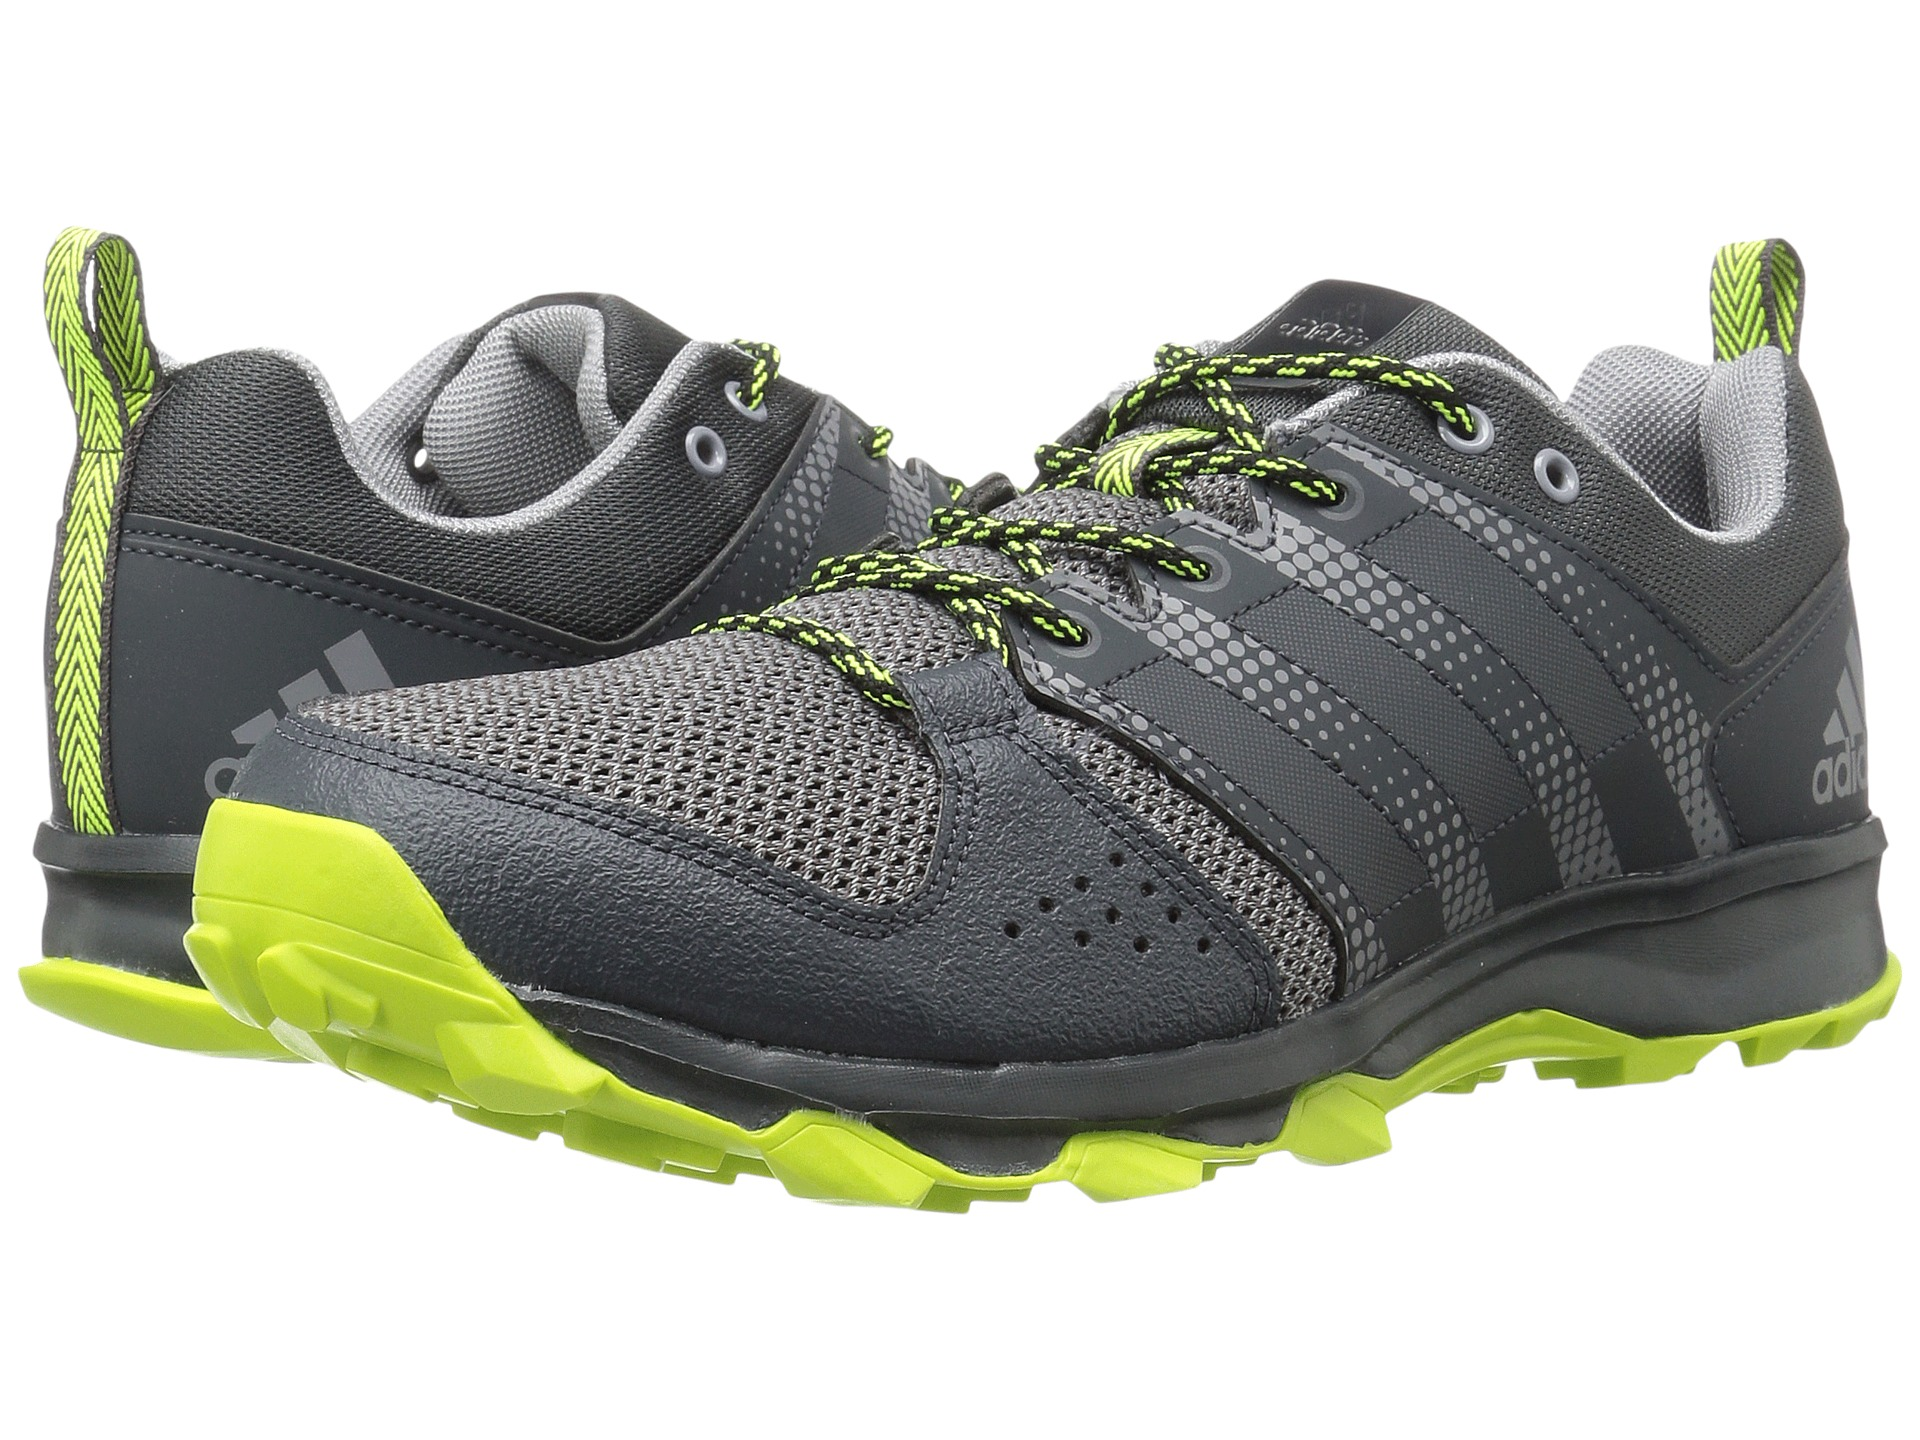 Adidas S76974 Men's Galaxy Trail Running Shoes